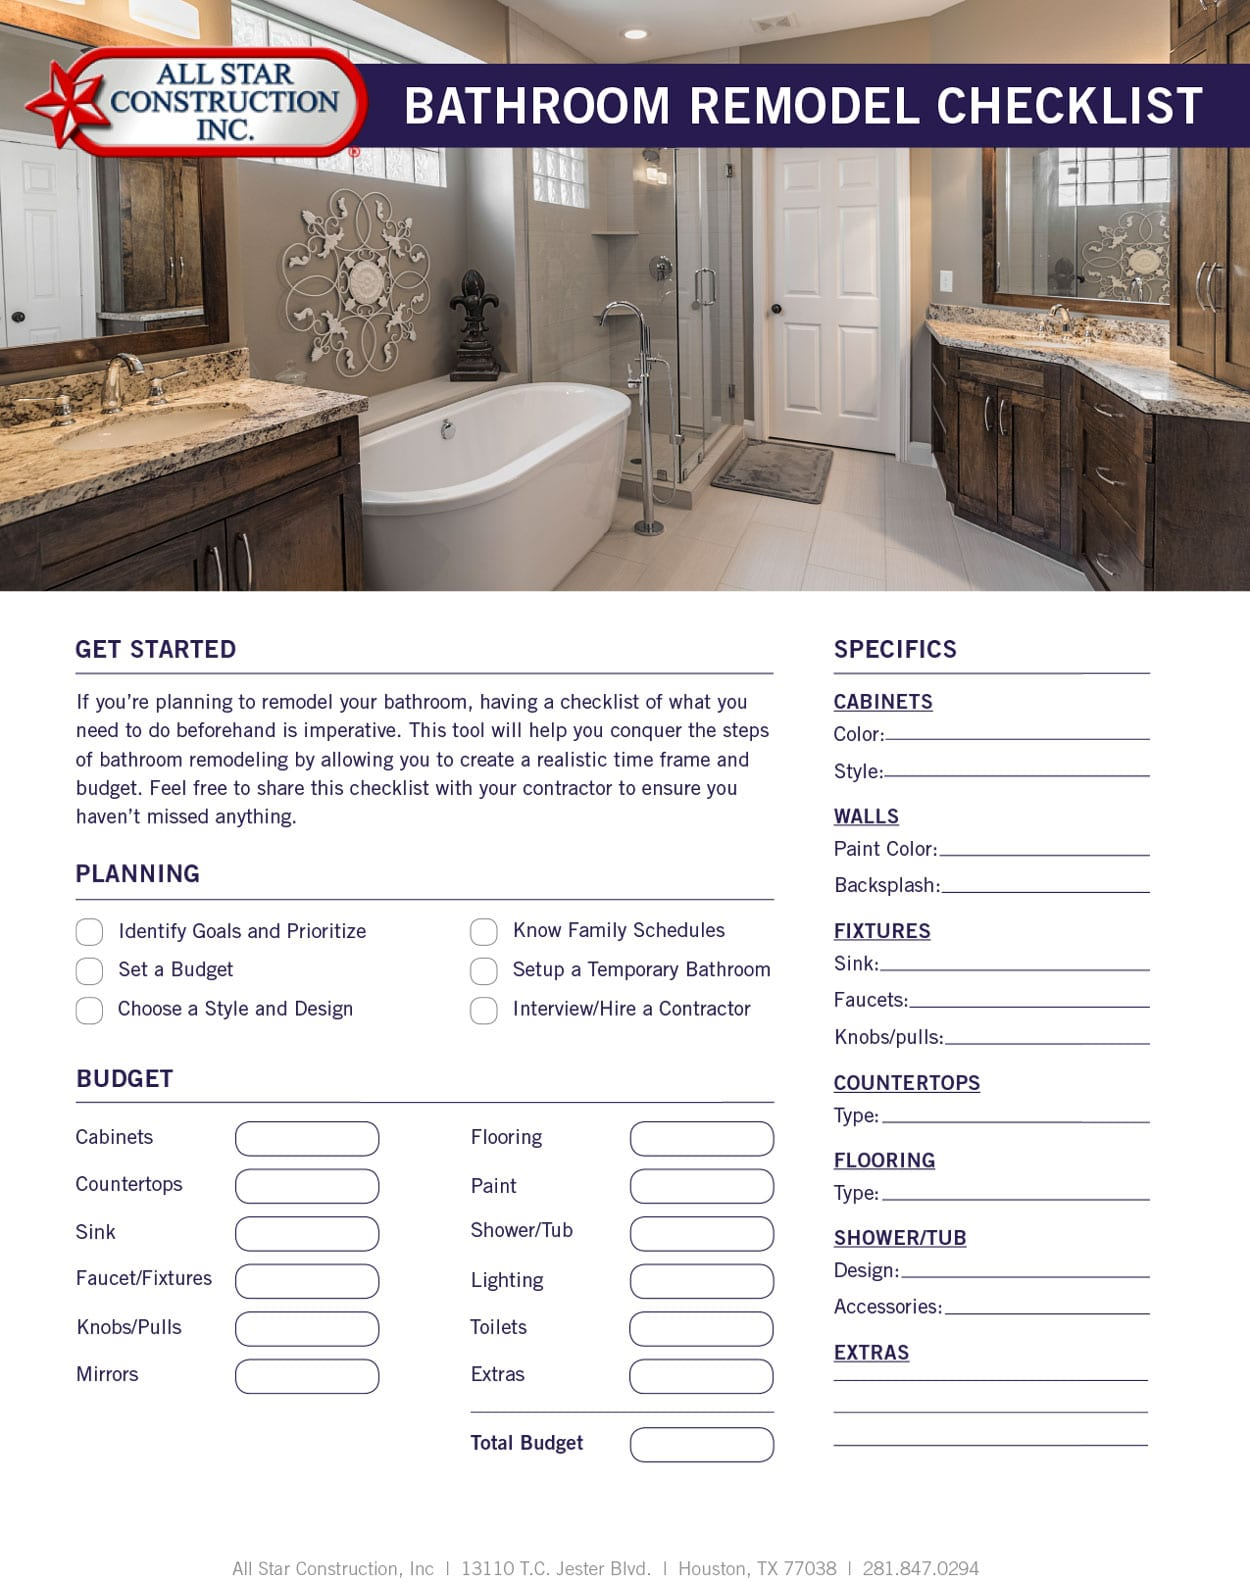 Houston Bathroom Remodeling All Star Construction Blog Home Remodeling In Houston Tx